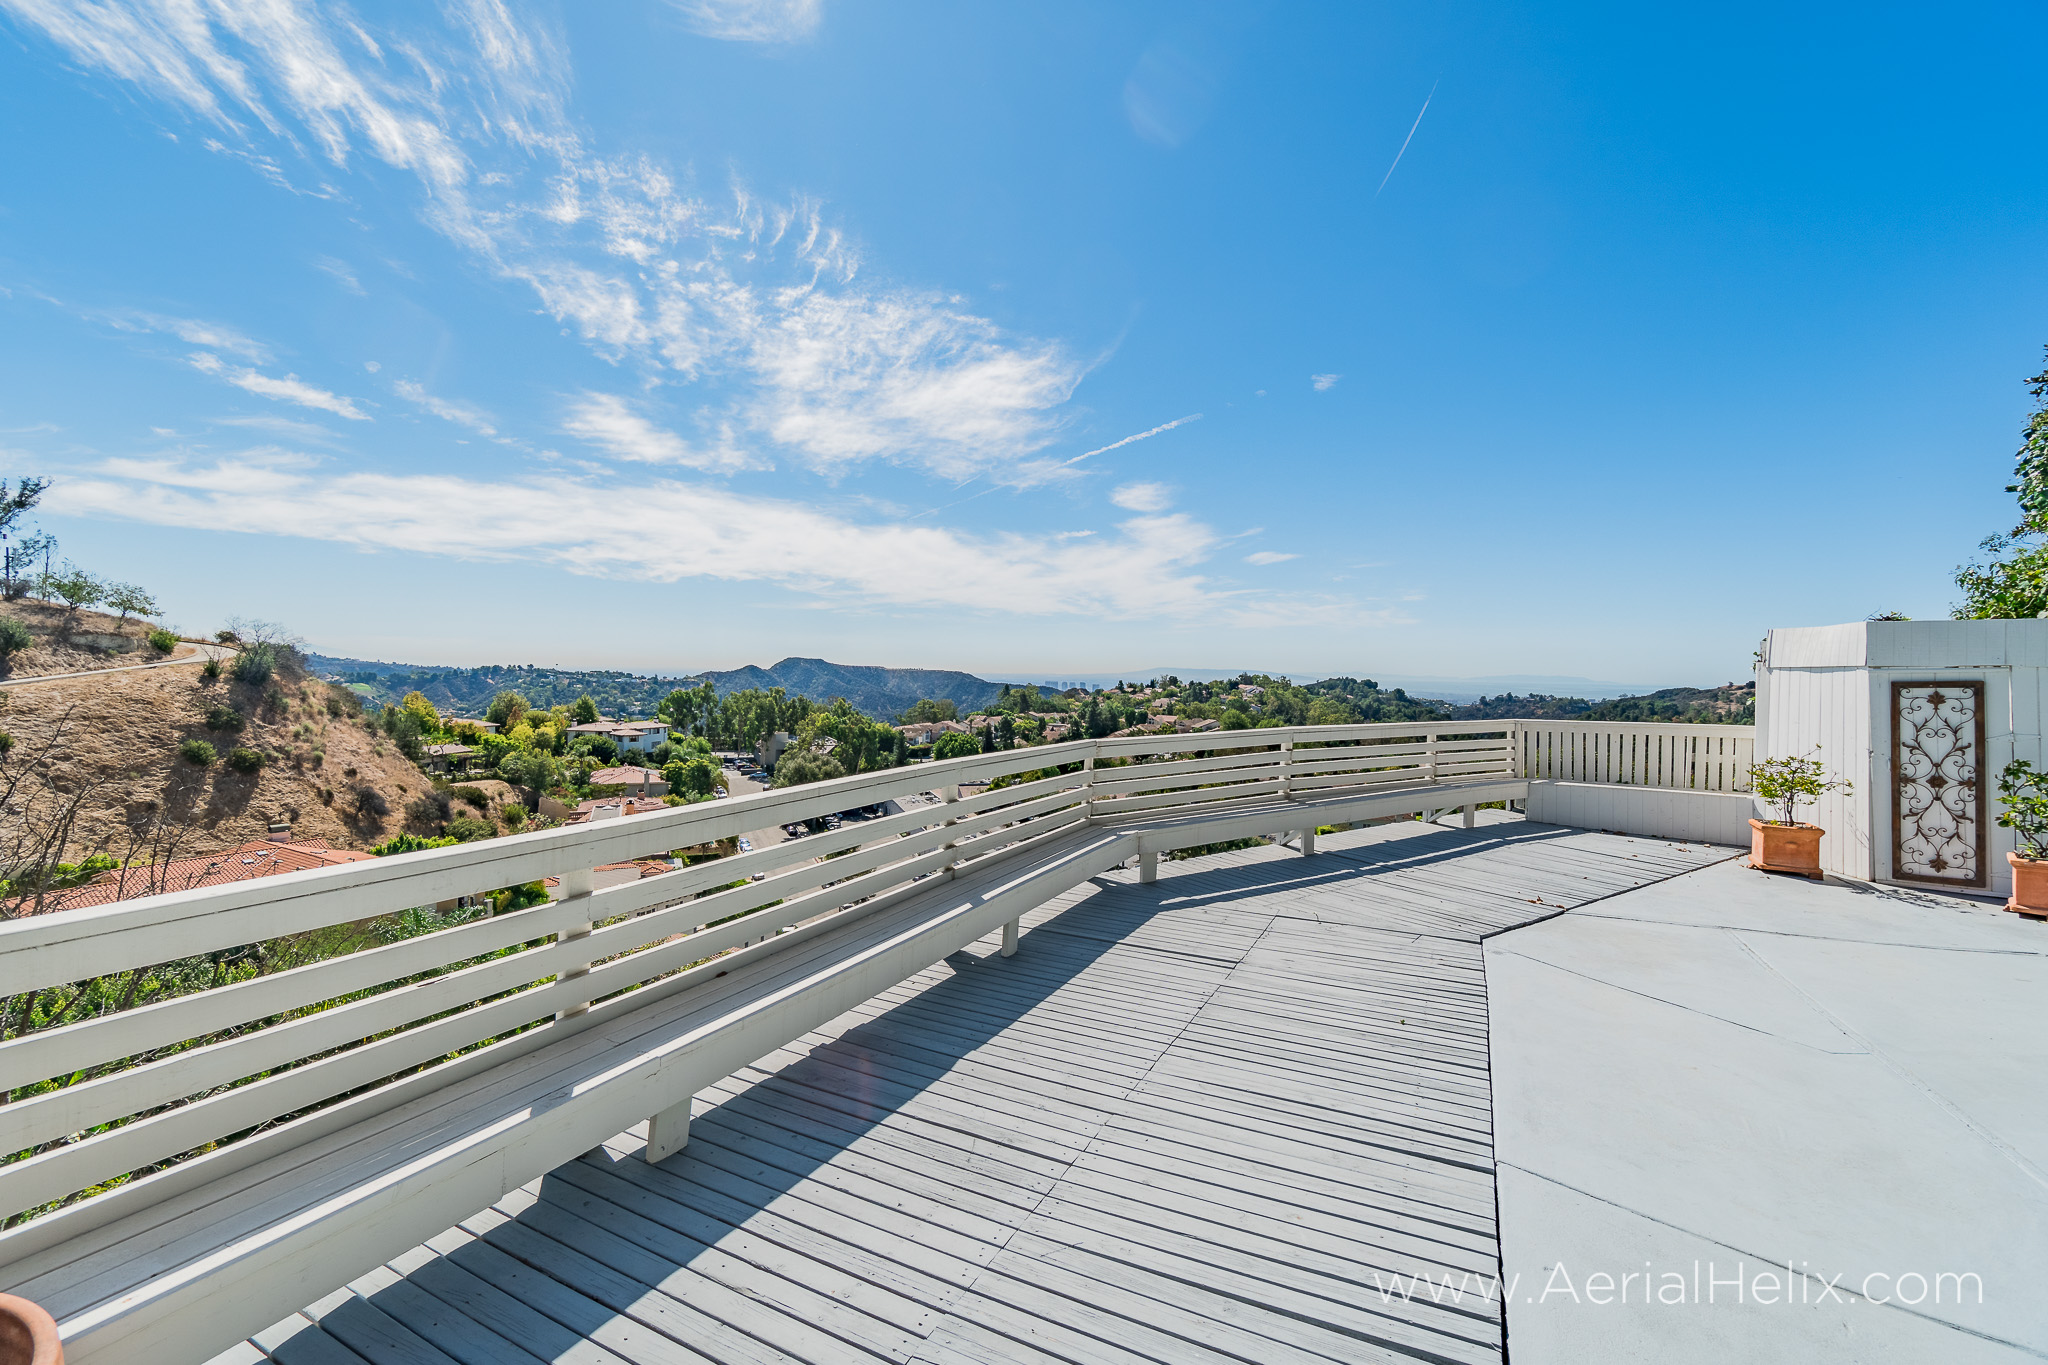 Mullholland Drive - HELIX Real Estate Photographer-7.jpg